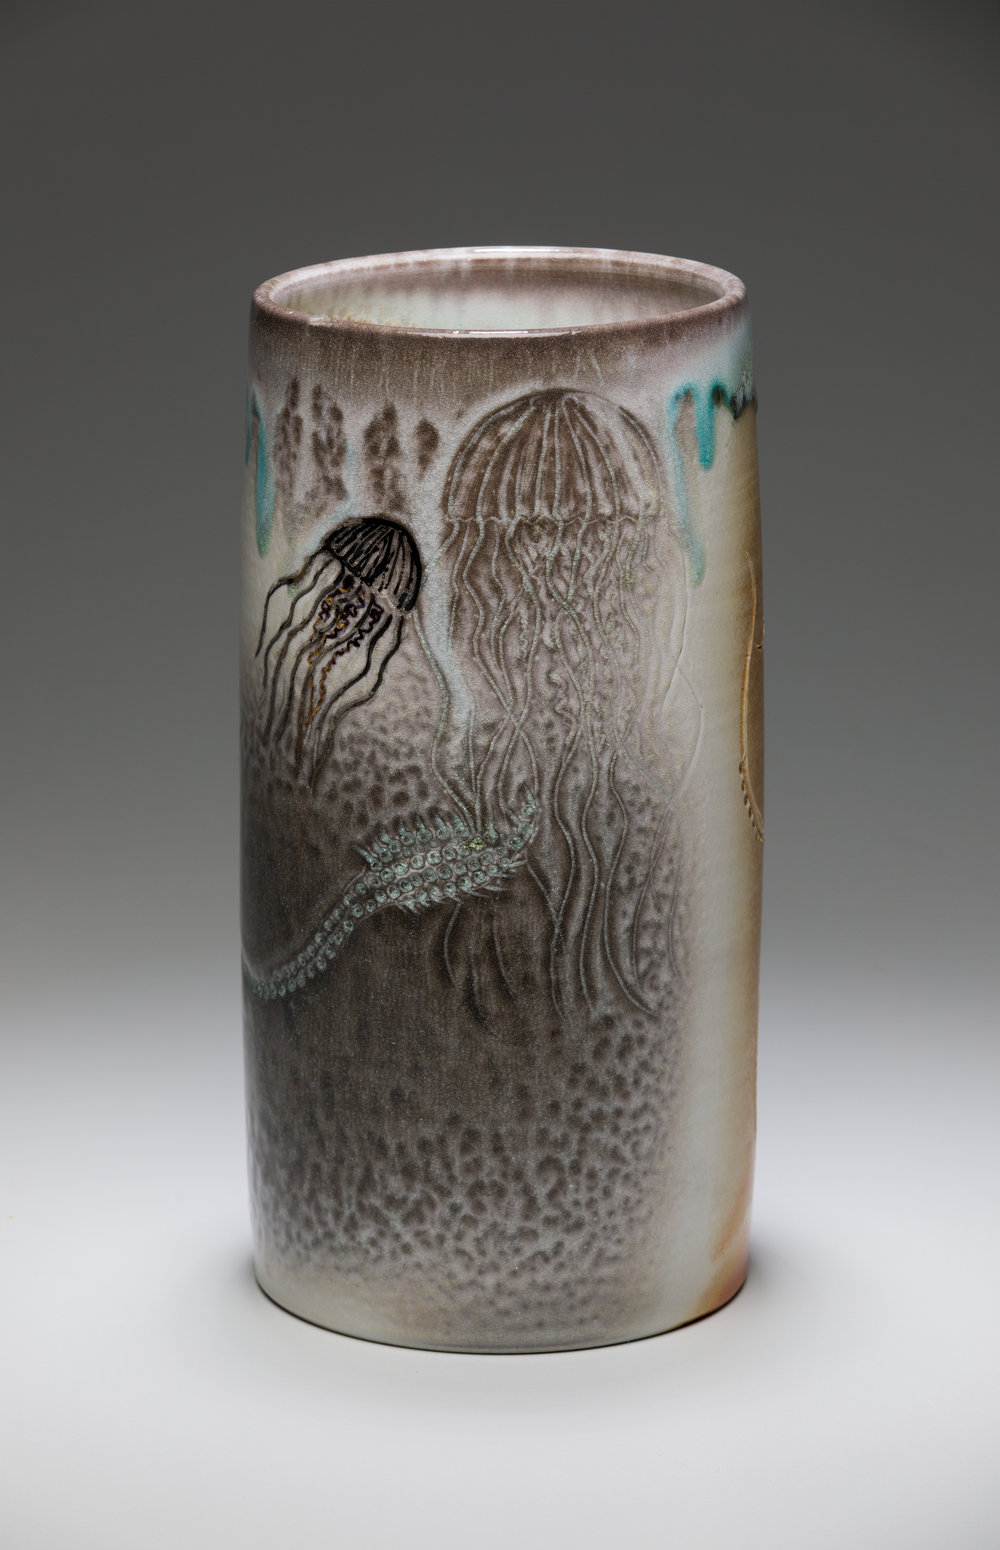 vase- squid, jelly-fish  porcelain, wood-fired